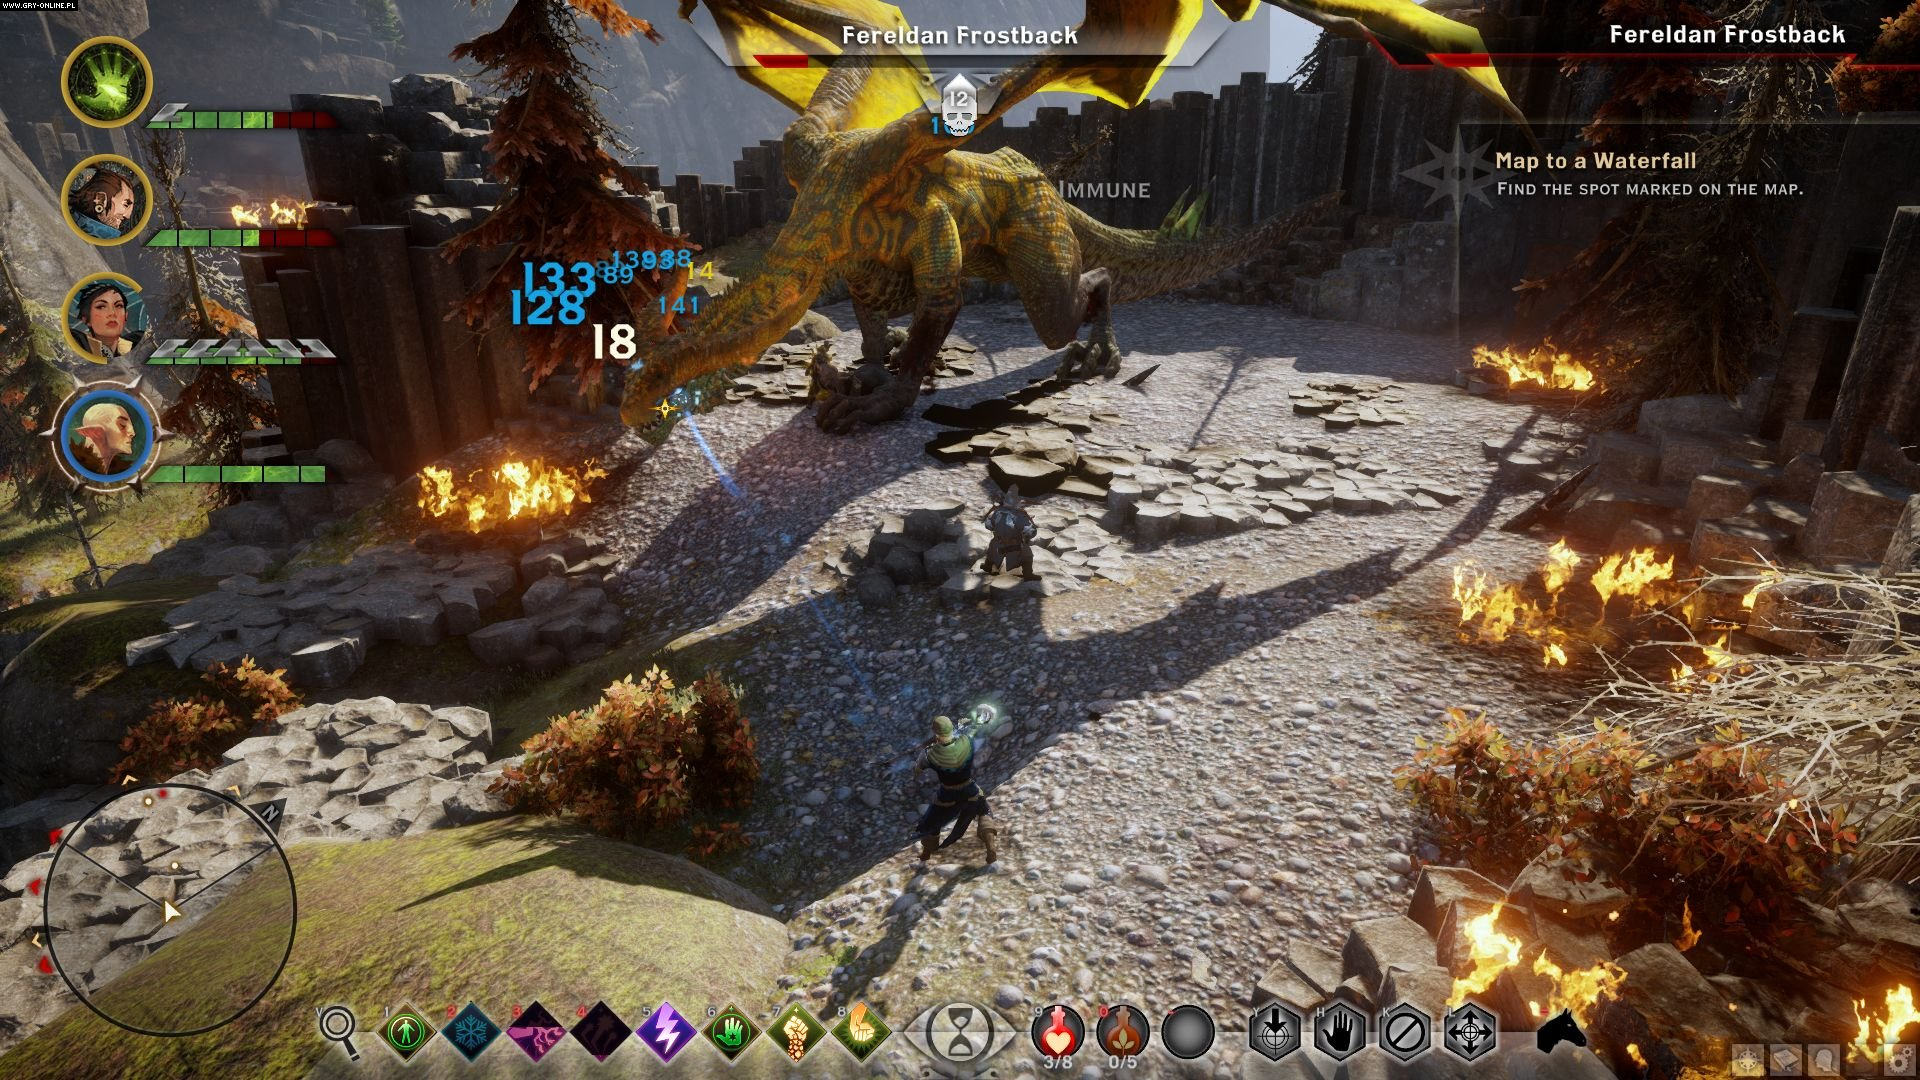 Dragon Age: Inquisition PC, X360, PS3 Games Image 9/225, BioWare Corporation, Electronic Arts Inc.